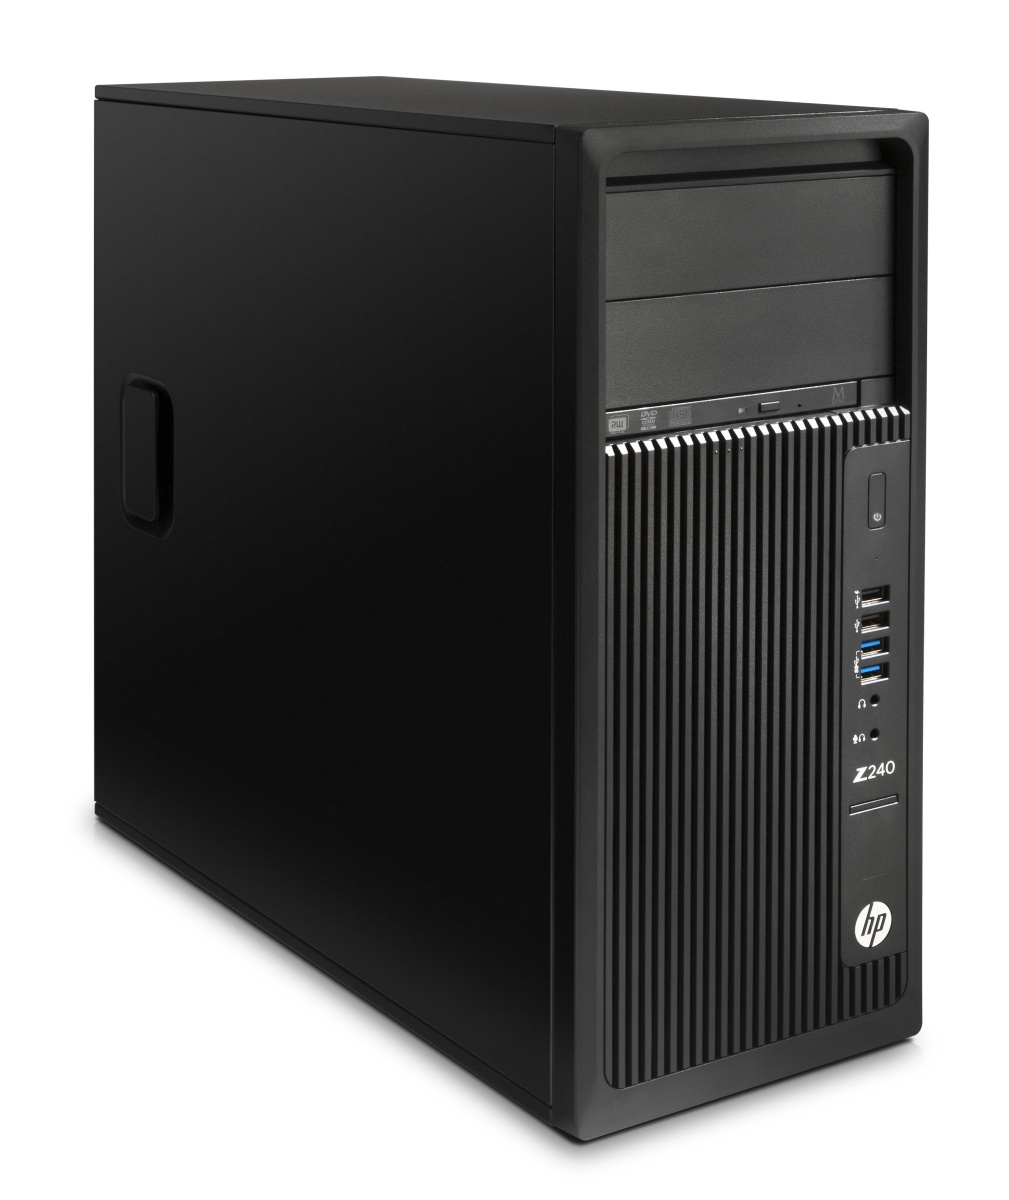 HP Z240 TWR Intel i7-6700 3.4GHz/8GB DDR4-2133 nECC(2x4GB)/256GB SSD/NVIDIA Quadro K1200 4GB 4xmDP/Win 10 Pro